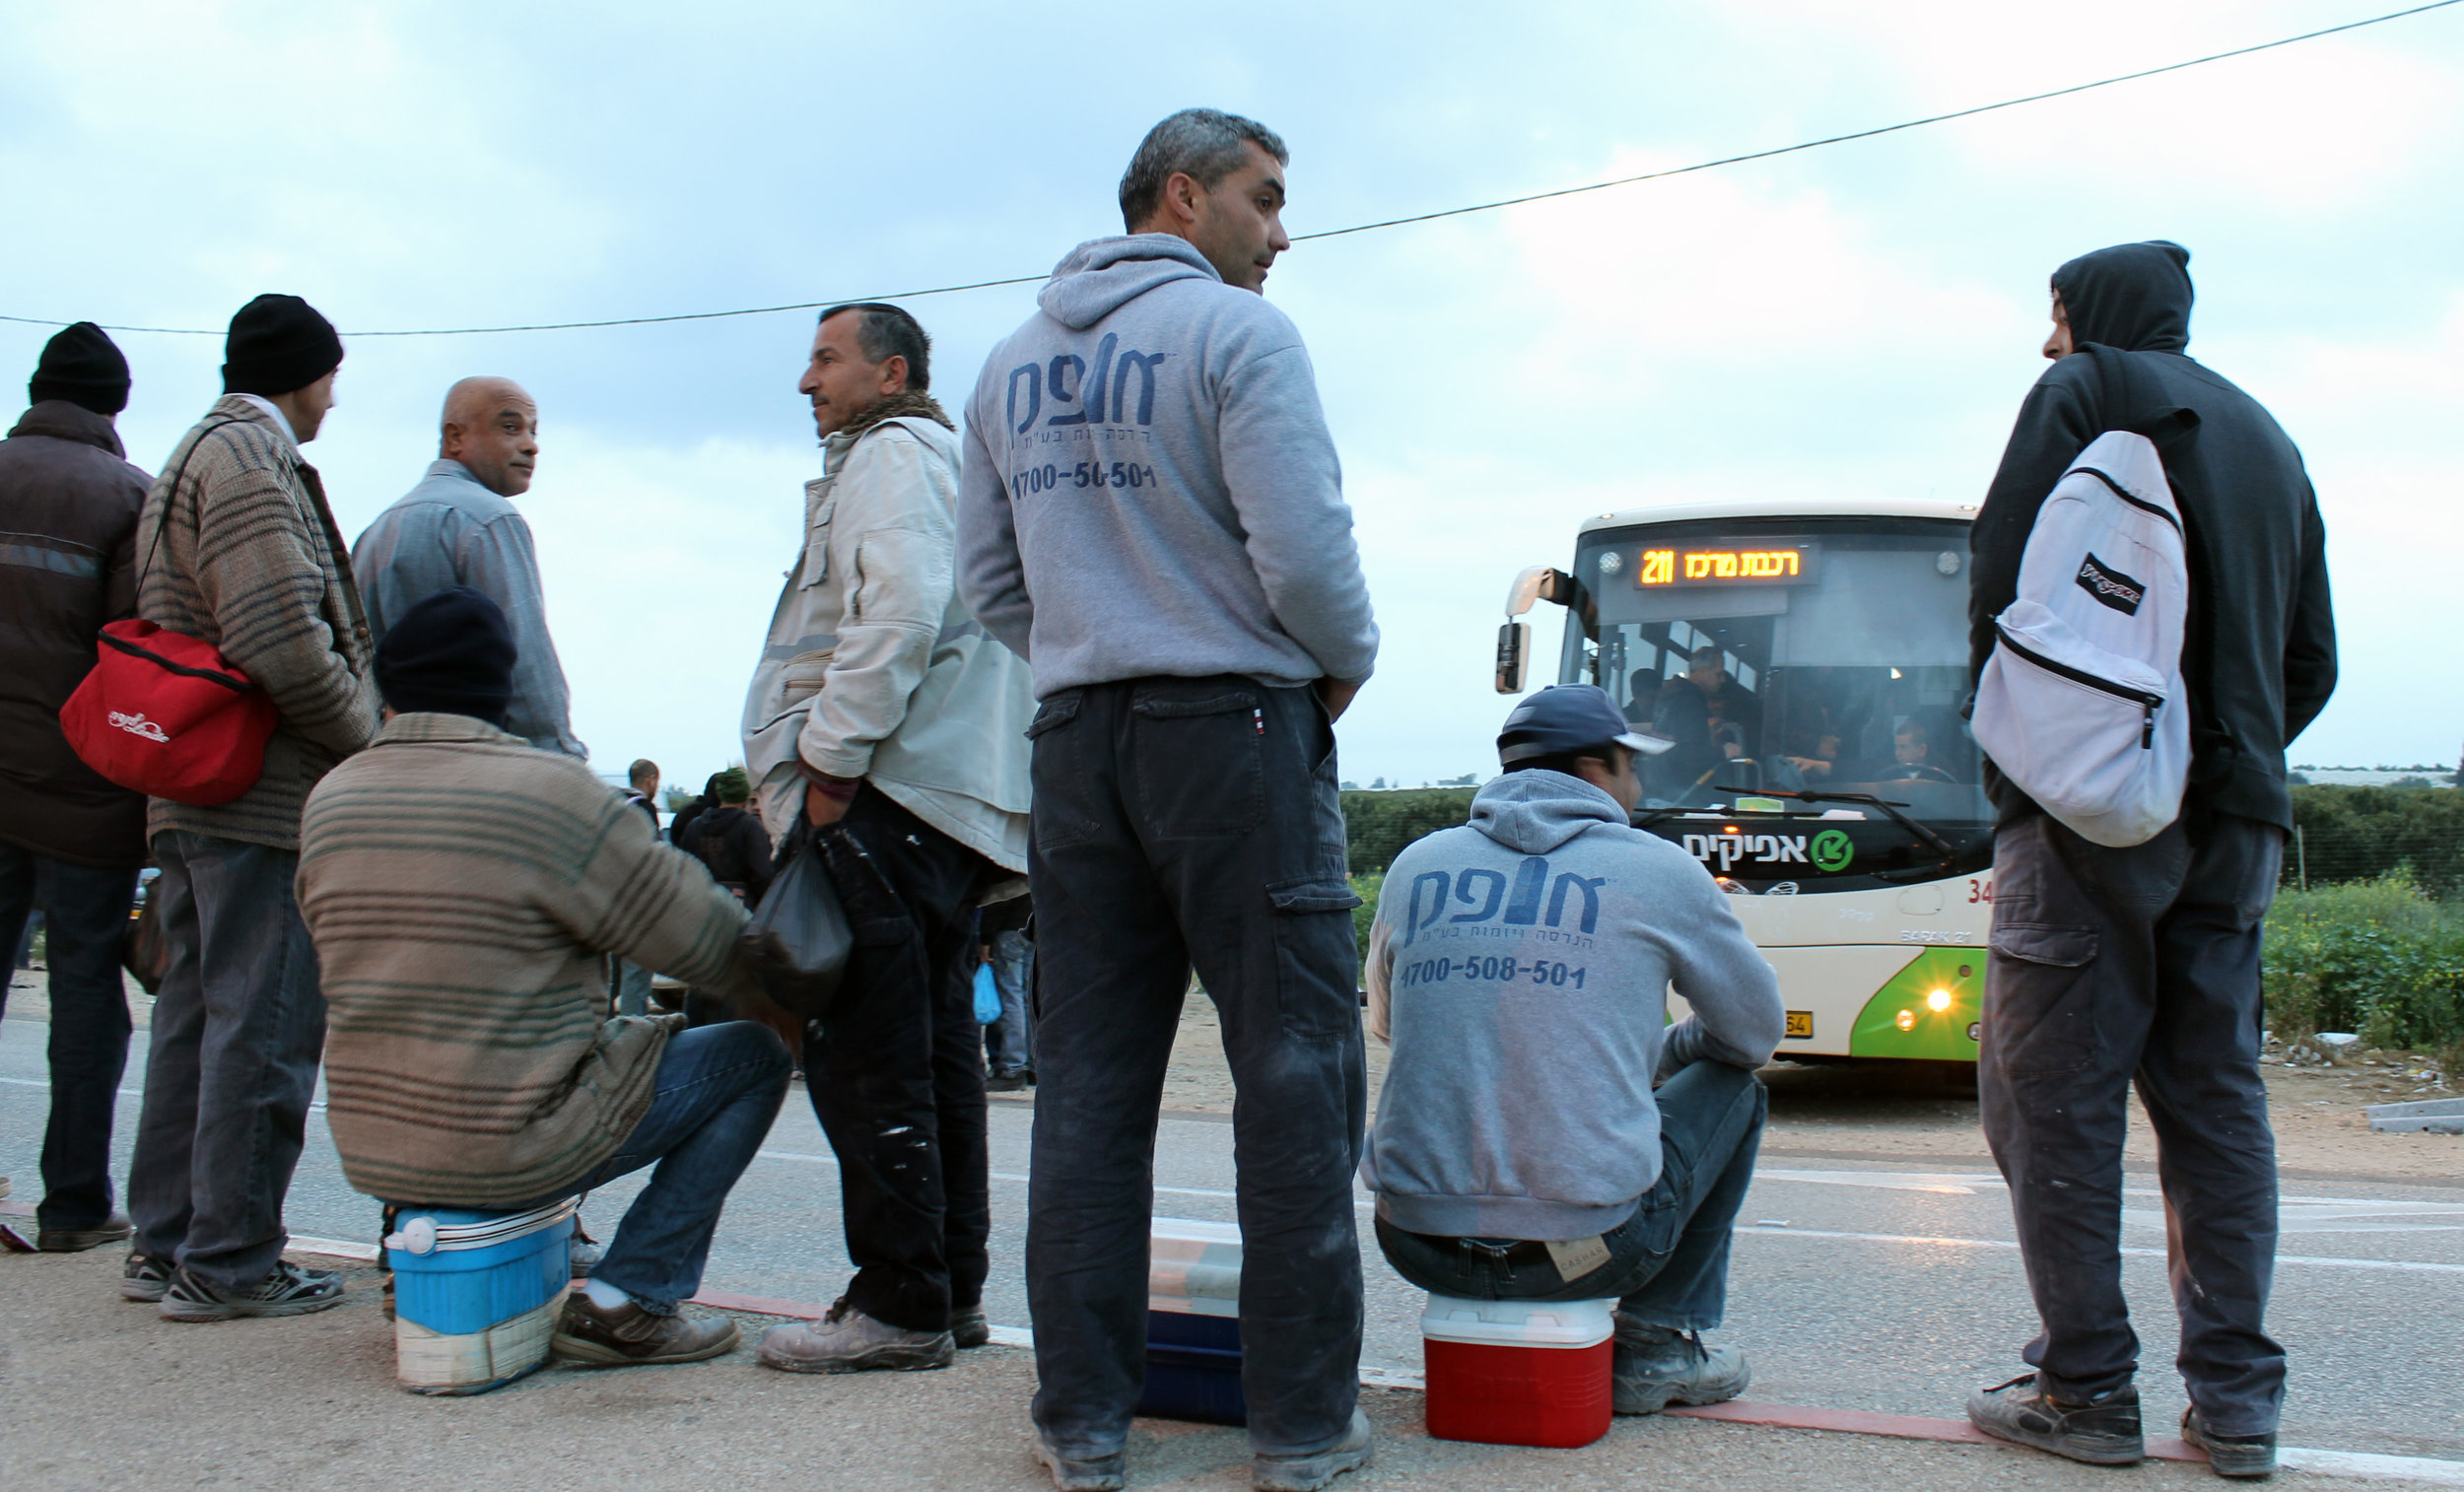 20130305 - Palestinian workers wait for bus.jpg